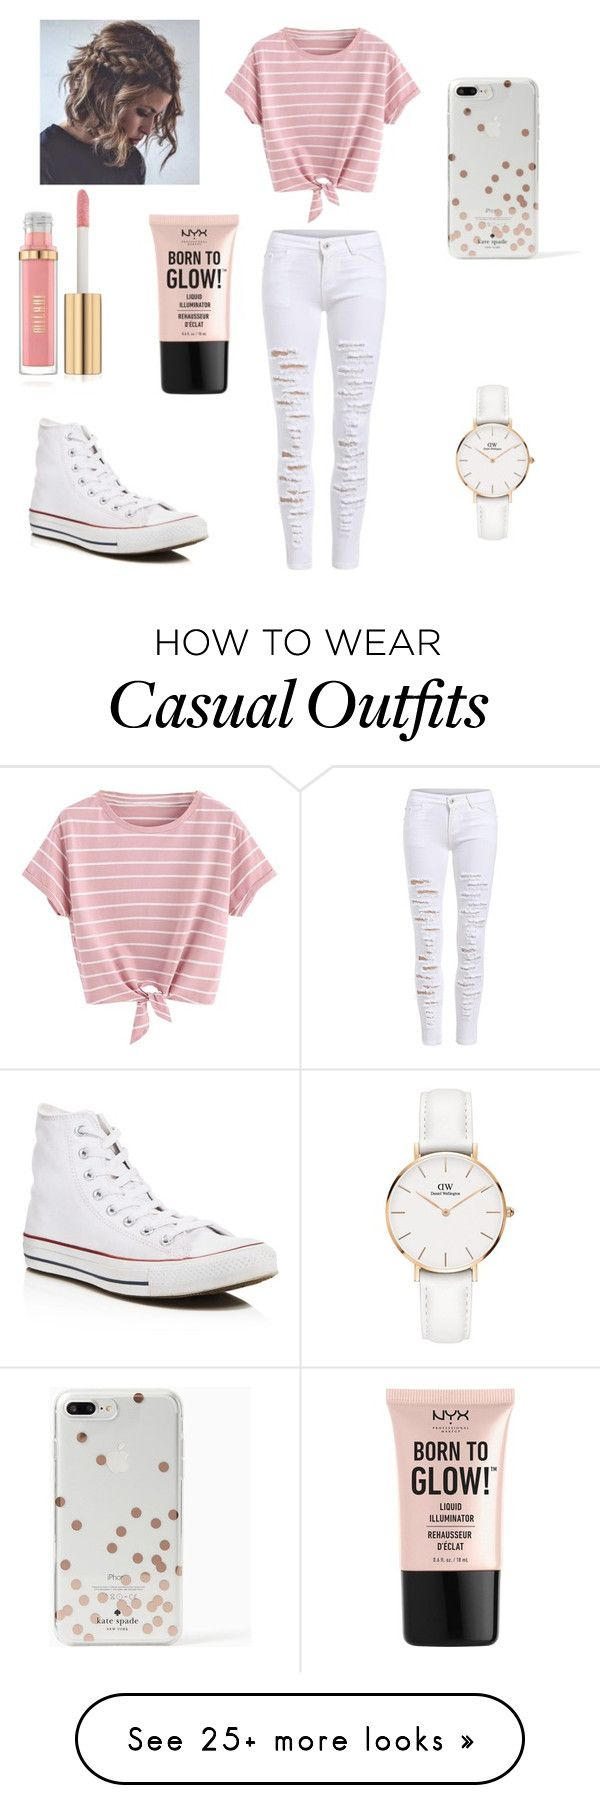 """Cute but Casual"" by ashlynn01 on Polyvore featuring Converse, Kate Spade, NYX and Daniel Wellington"